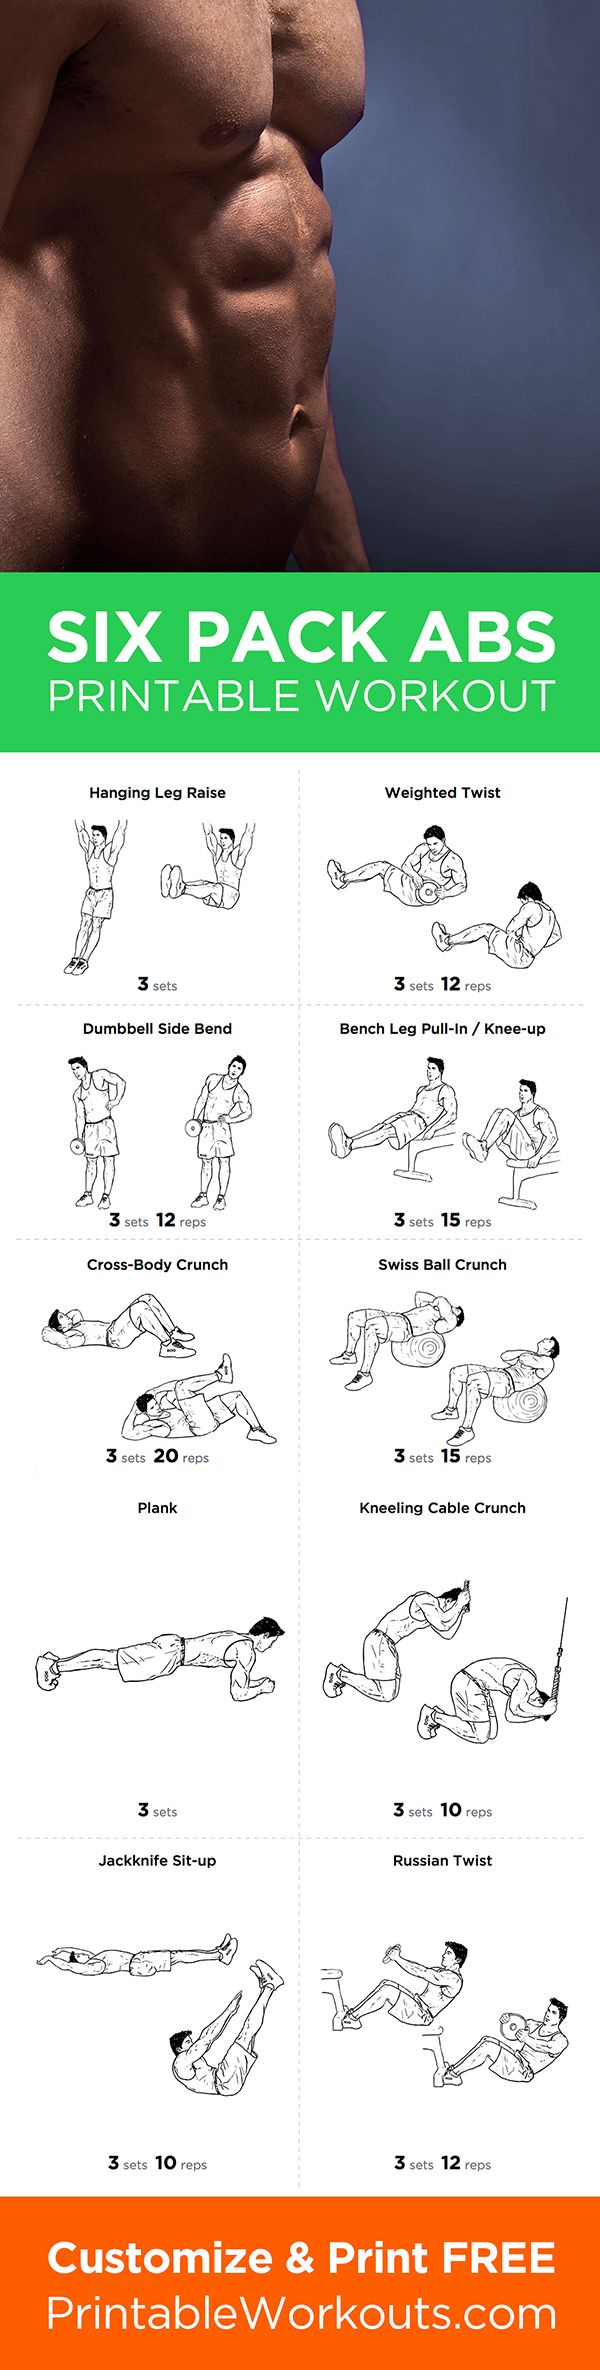 Get perfect six pack abs with this great all-around printable ab workout routine PDF from Printable Workouts – customize and print it now at http://printableworkouts.com/great-abdominal-workout-routine-for-six-pack-abs-printable-workout/